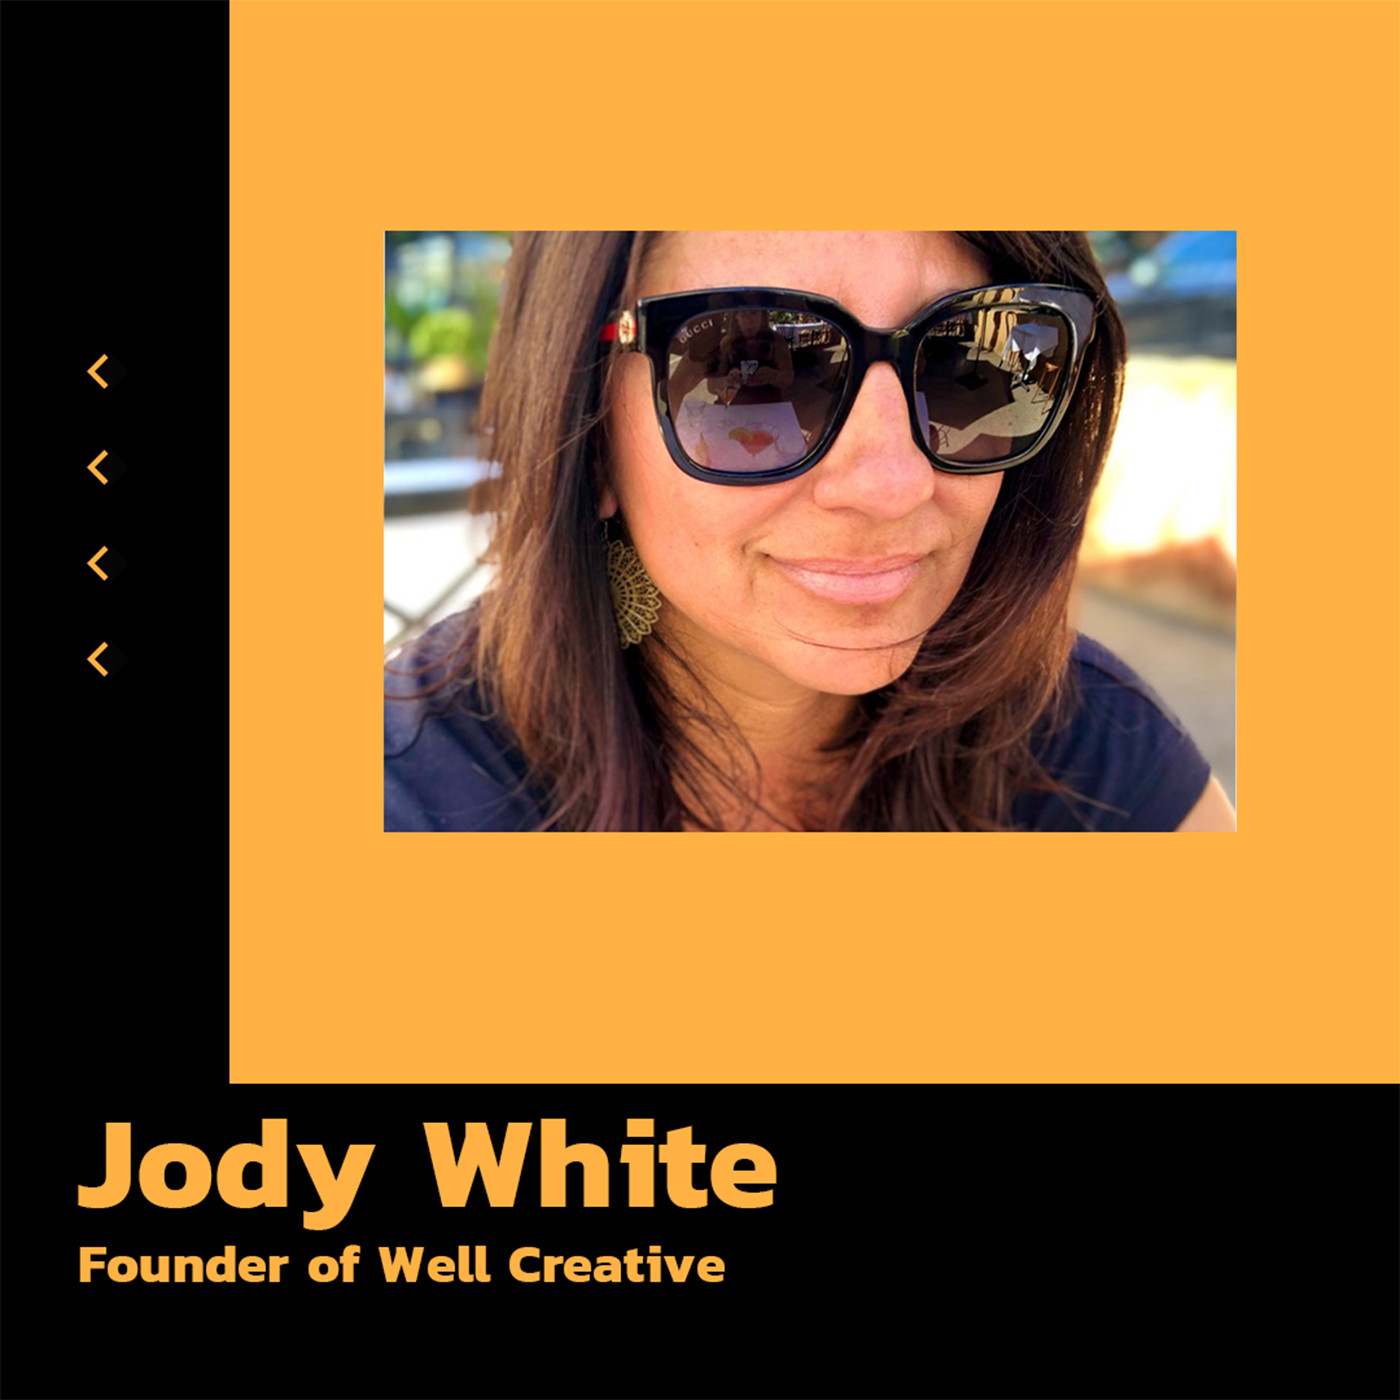 Jody White, Founder of Well Creative talks imposter syndrome and social media